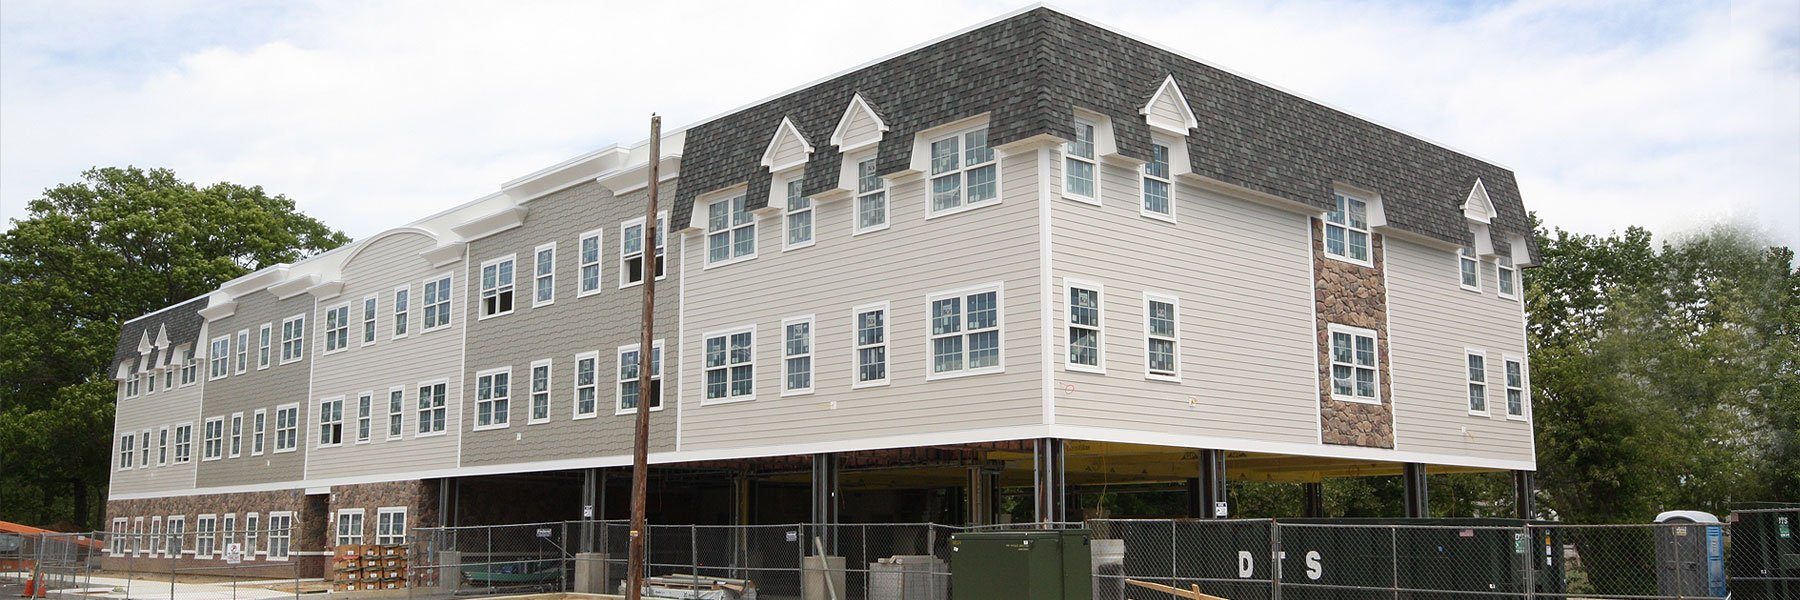 Baypointe at Keyport Apartments For Rent in Keyport, NJ Building View